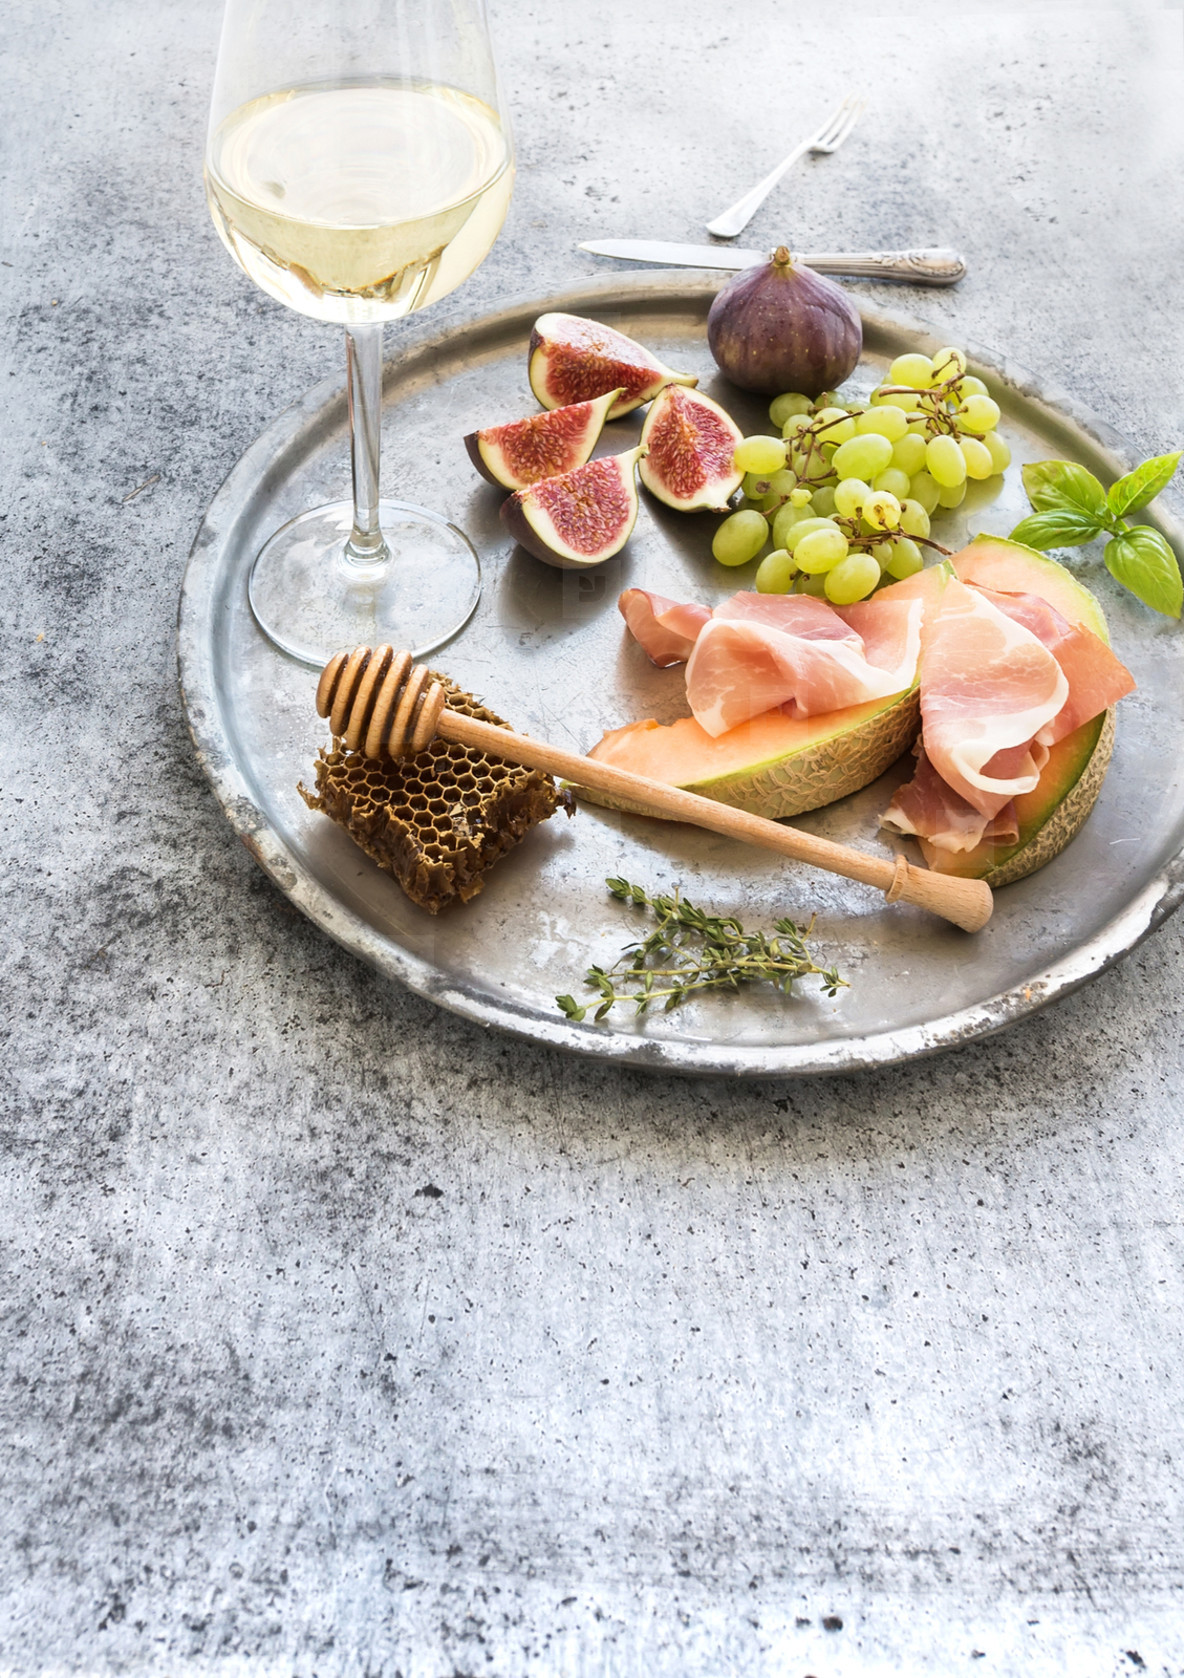 Wine appetizer set  Glass of white wine  honeycomb with drizzlier  figs  grapes  melon and prosciutto on silver tray over rustic grunge surface